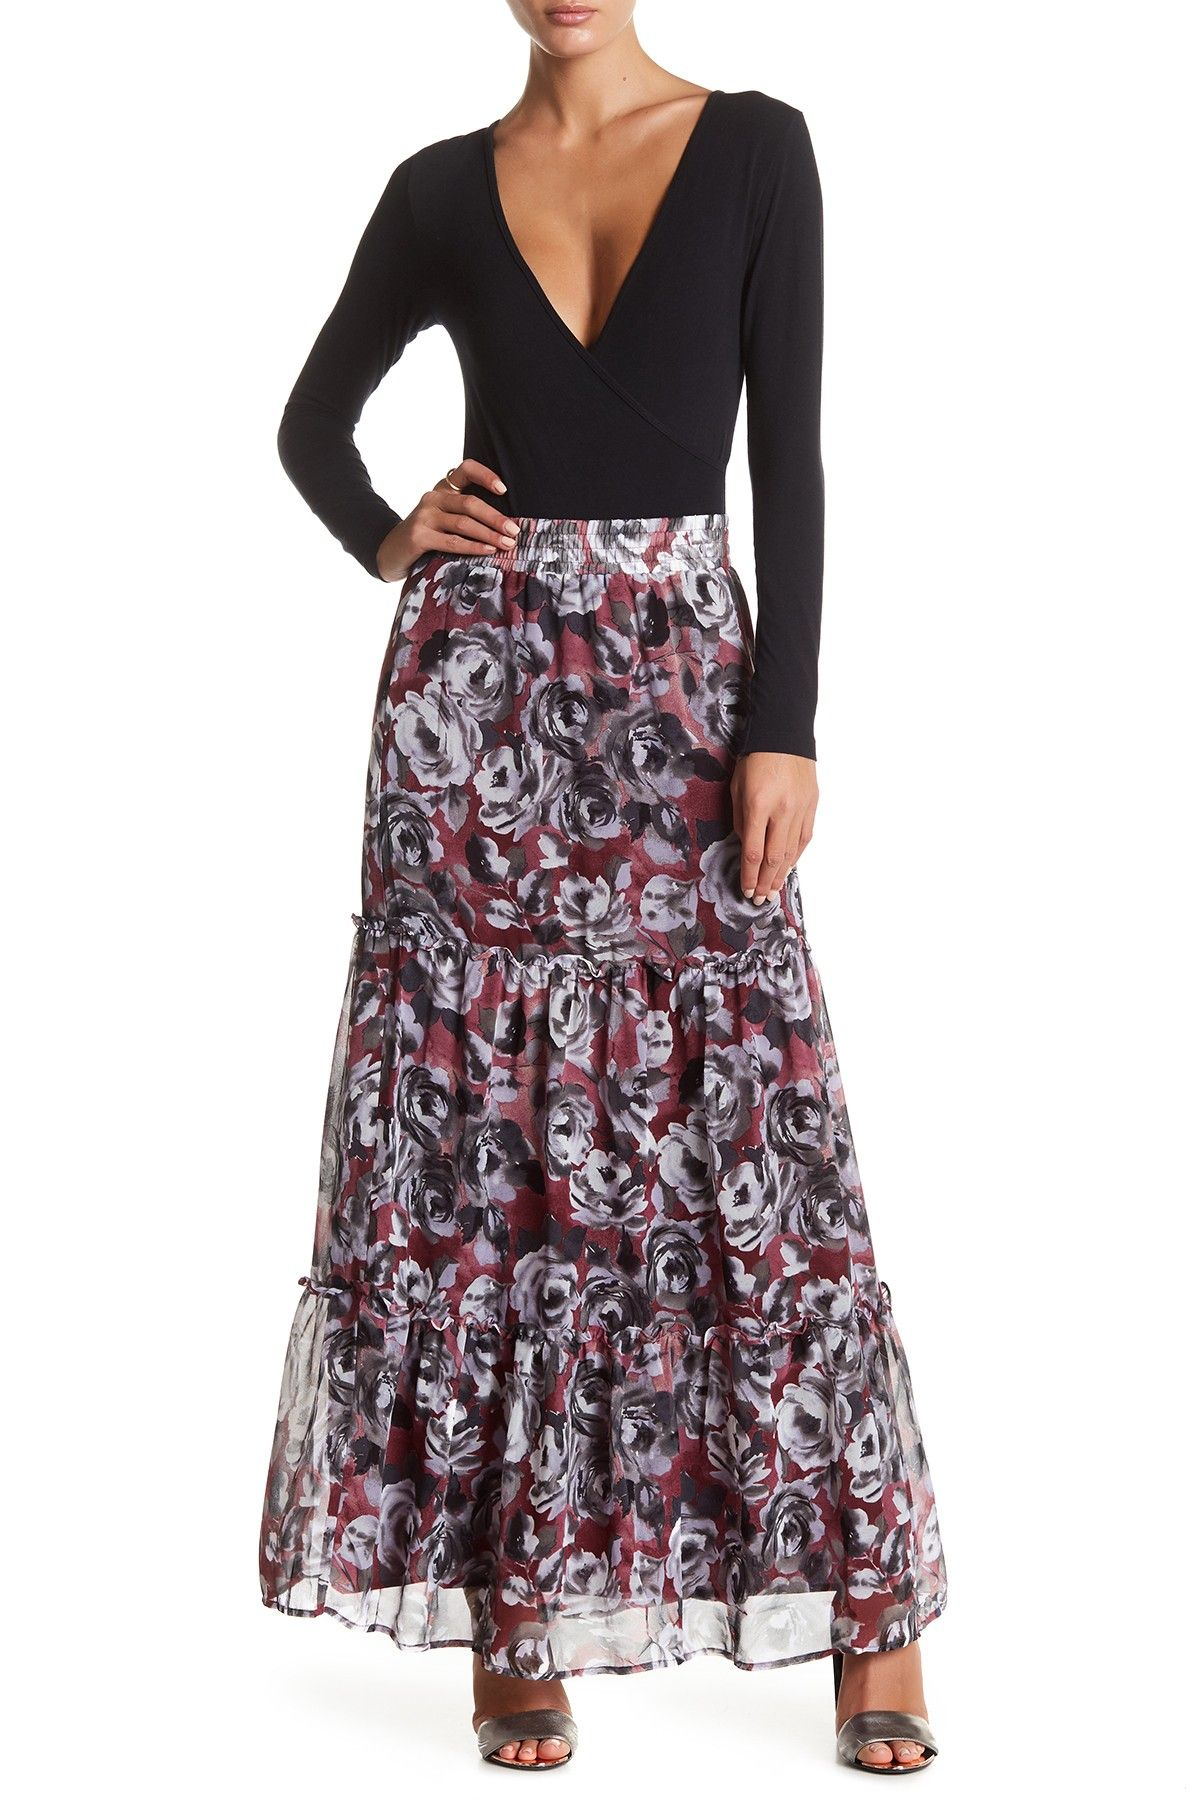 643a5587c1 Printed Tiered Maxi Skirt   Products   Skirts, Fall, Nordstrom